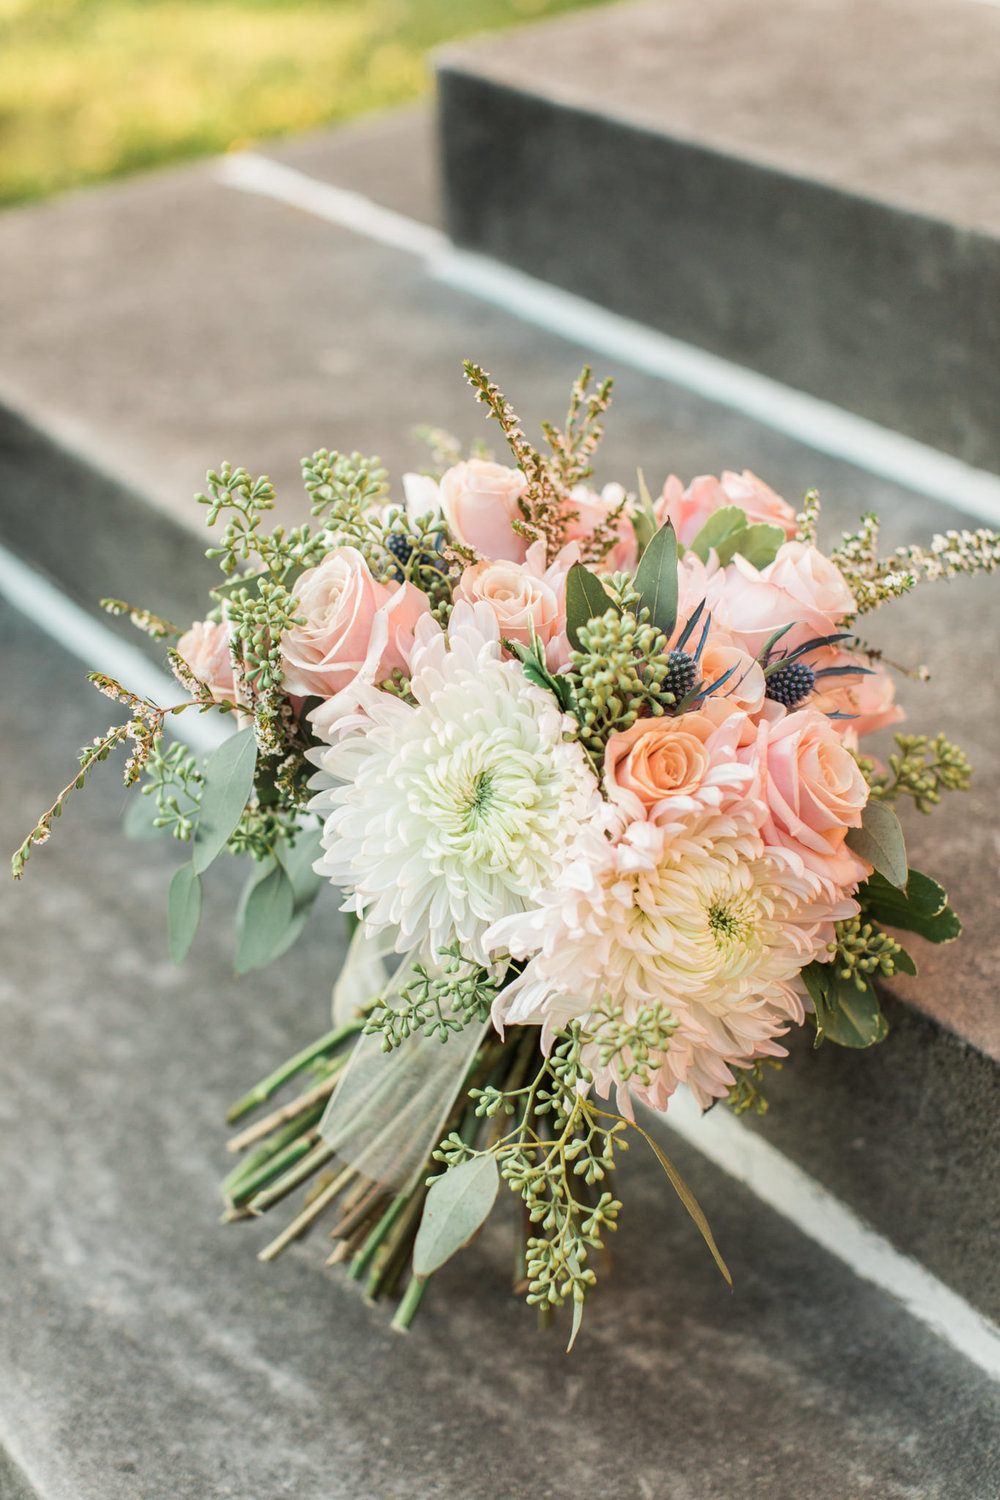 Bouquet outside on steps at Gardencourt Louisville Wedding Venue